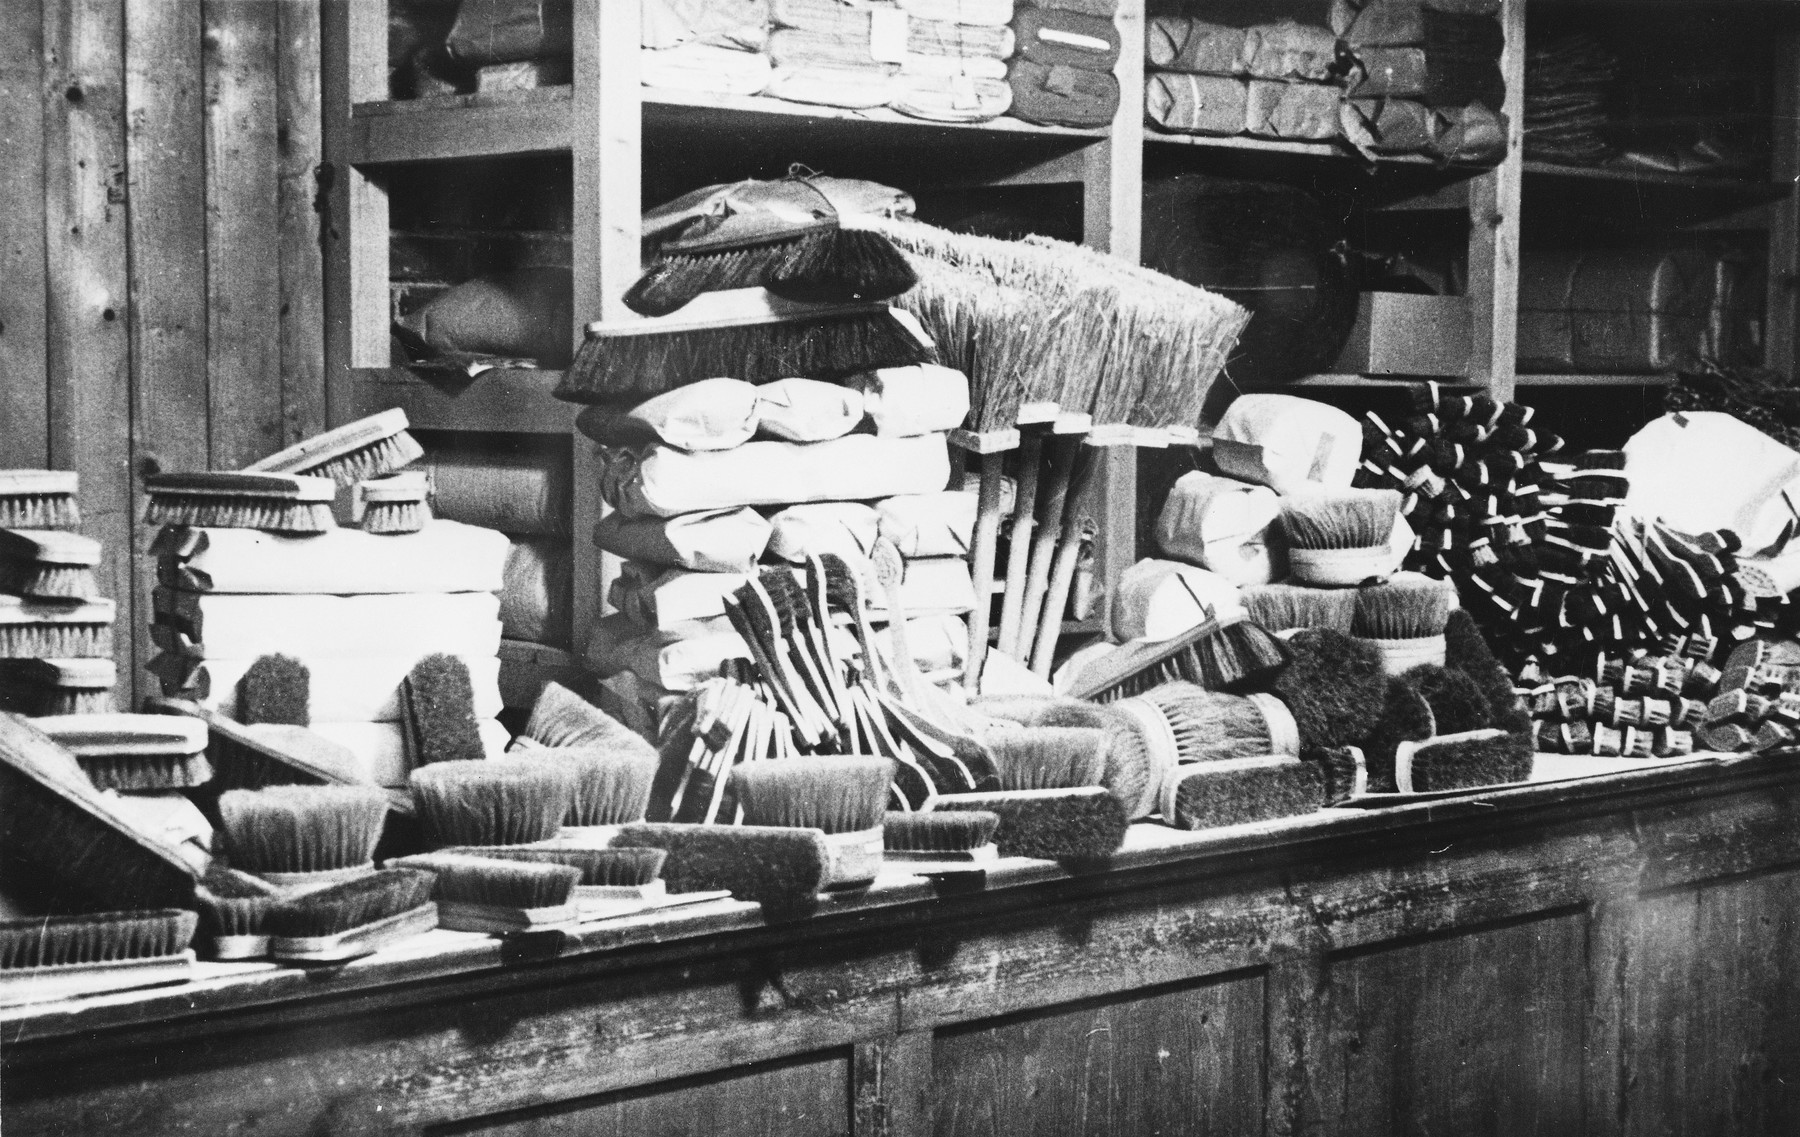 Brushes and brooms made by prisoners in a Slovak labor camp.